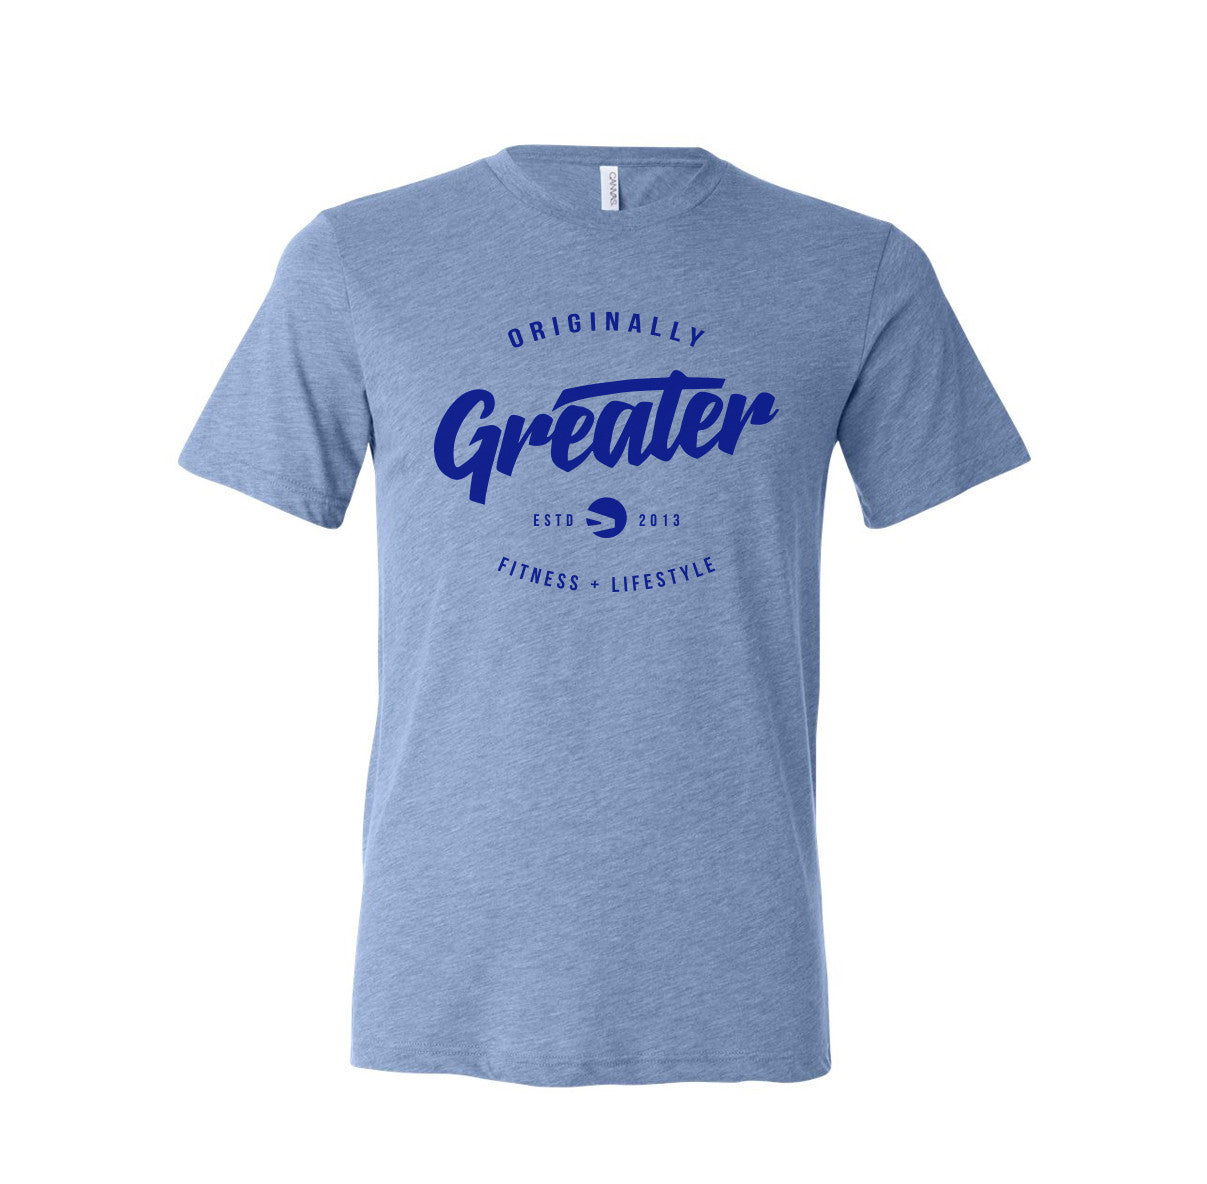 Originally Greater Blue